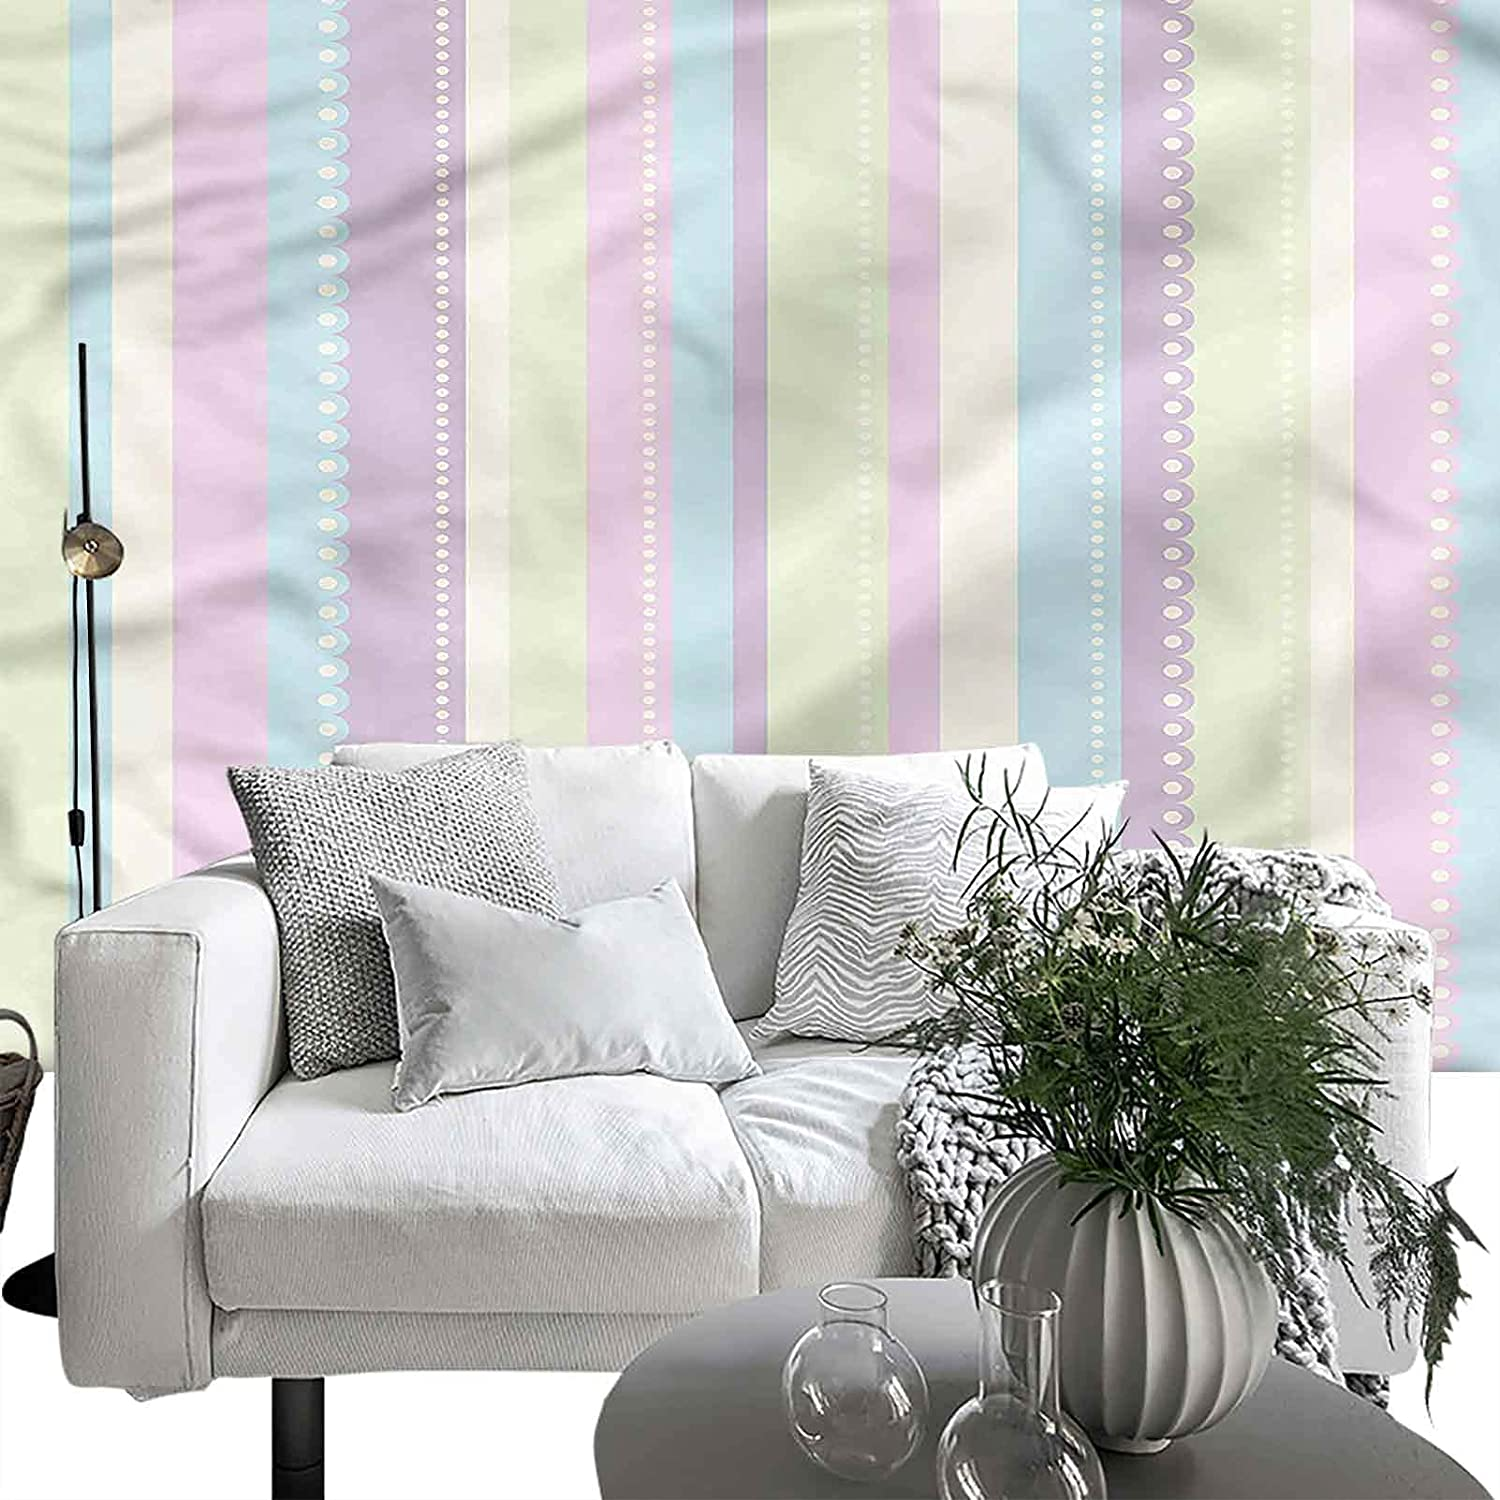 Removable Large Spring new work one after SEAL limited product another Sticker Foil Stripes Vertical Geometric Abstract